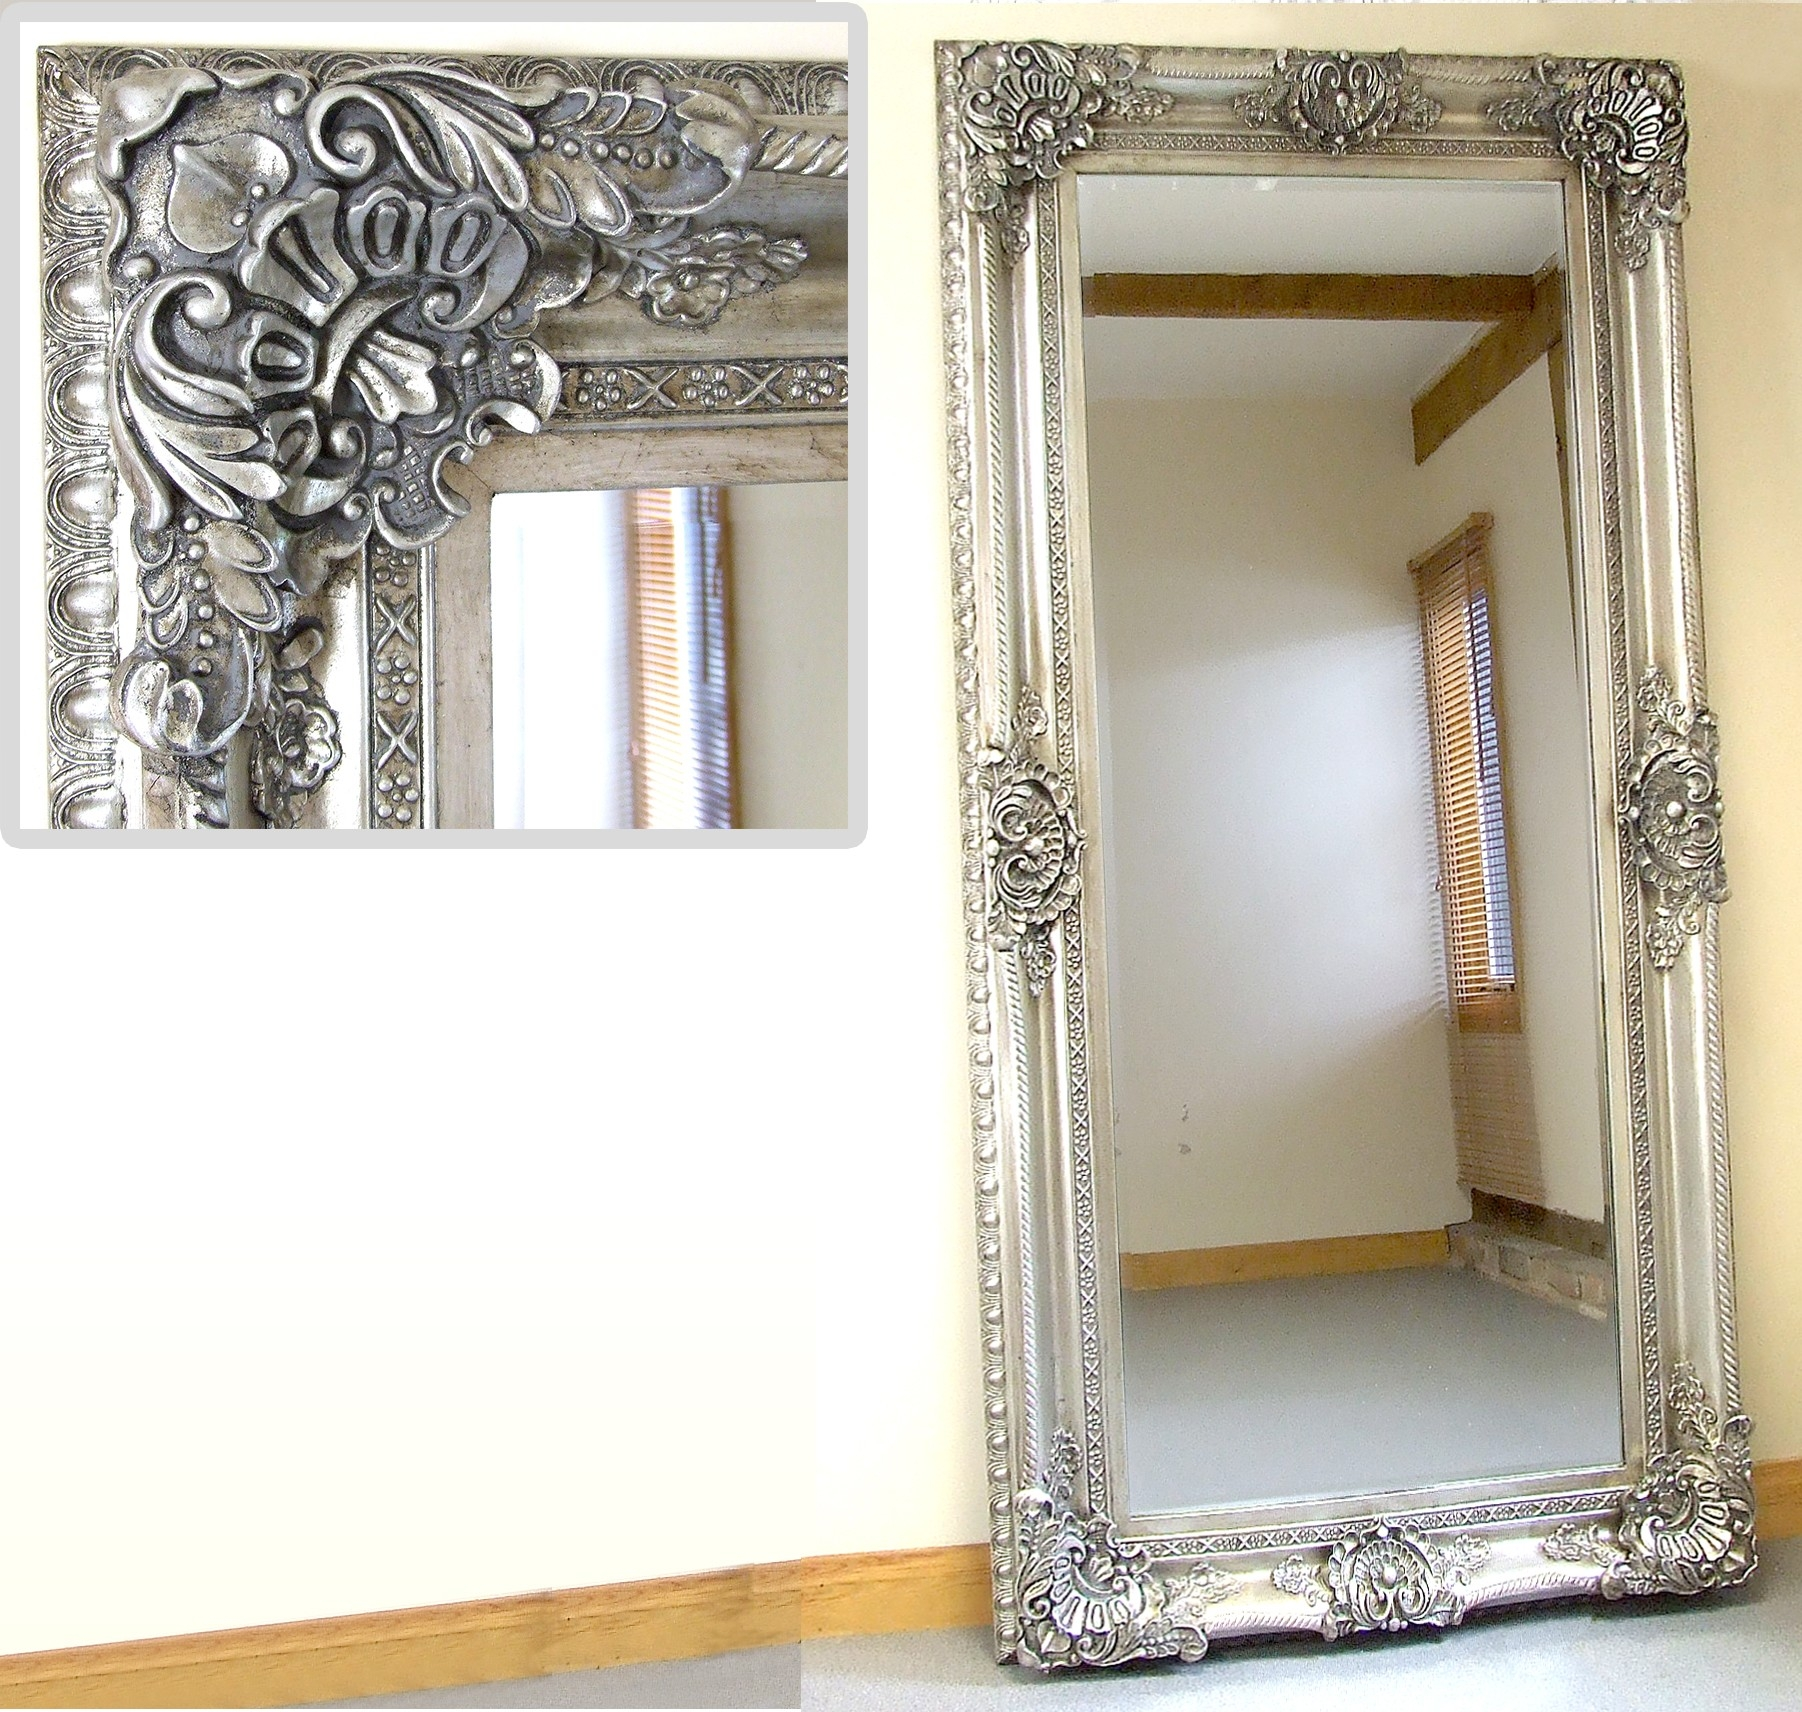 Ornate Full Length Wall Mirror Mirror Design Ideas With Ornate Full Length Wall Mirror (Image 12 of 15)